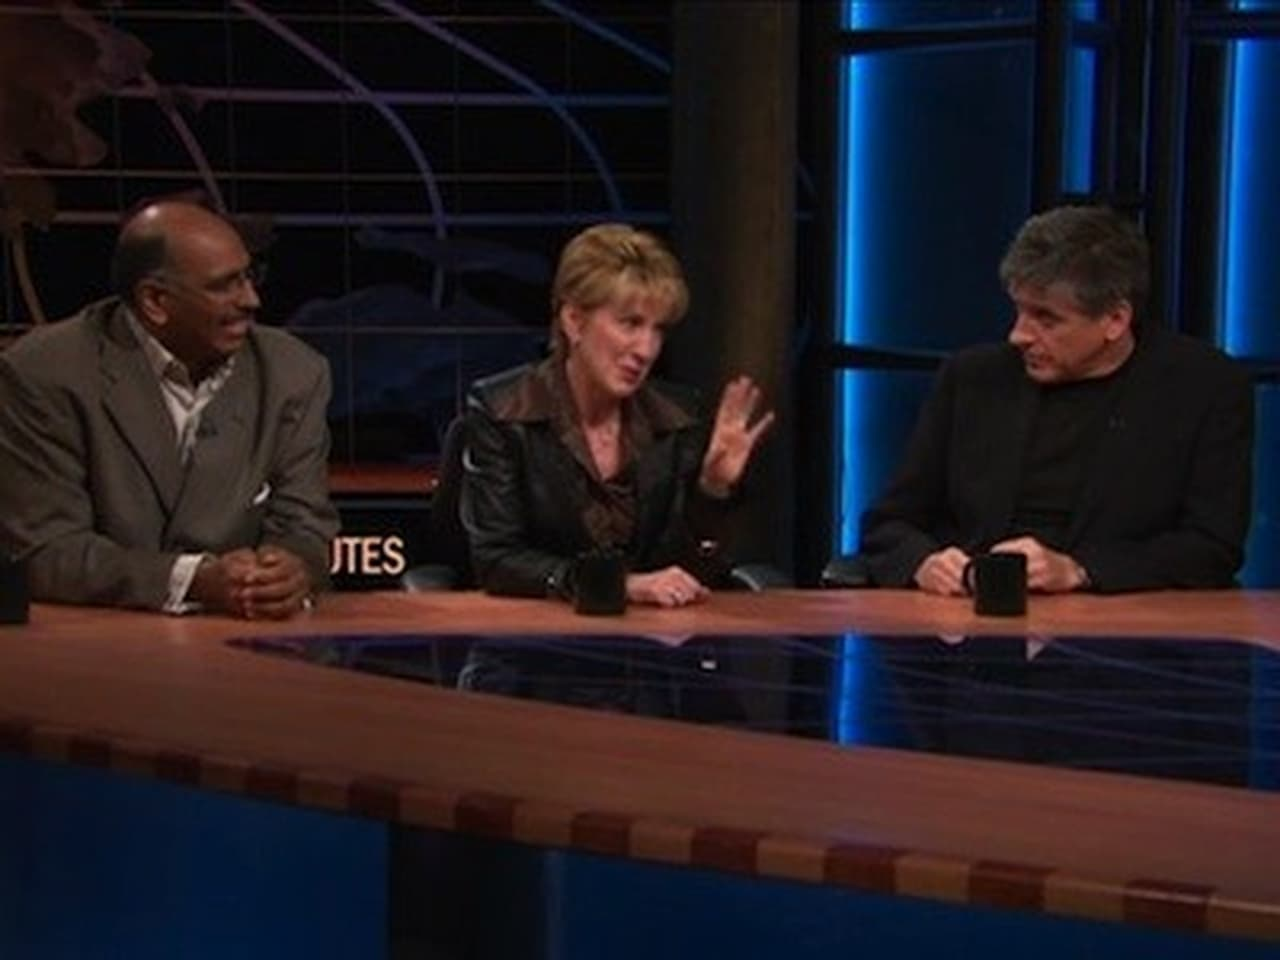 Real Time with Bill Maher - Season 5 Episode 1 : February 16, 2007